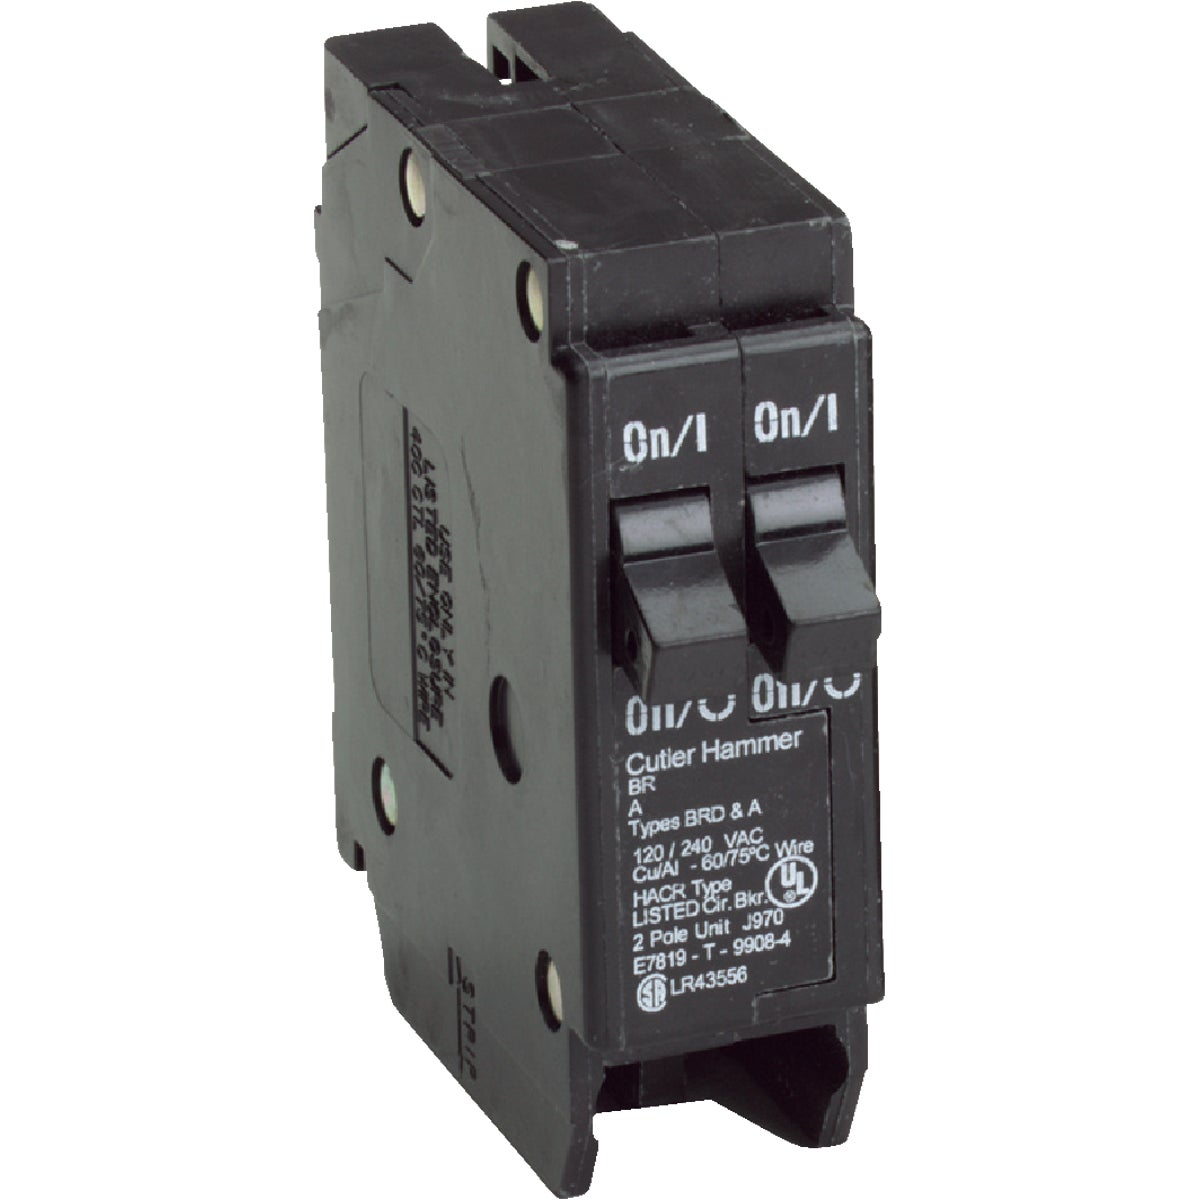 15A/15A CIRCUIT BREAKER - BR1515 by Eaton Corporation